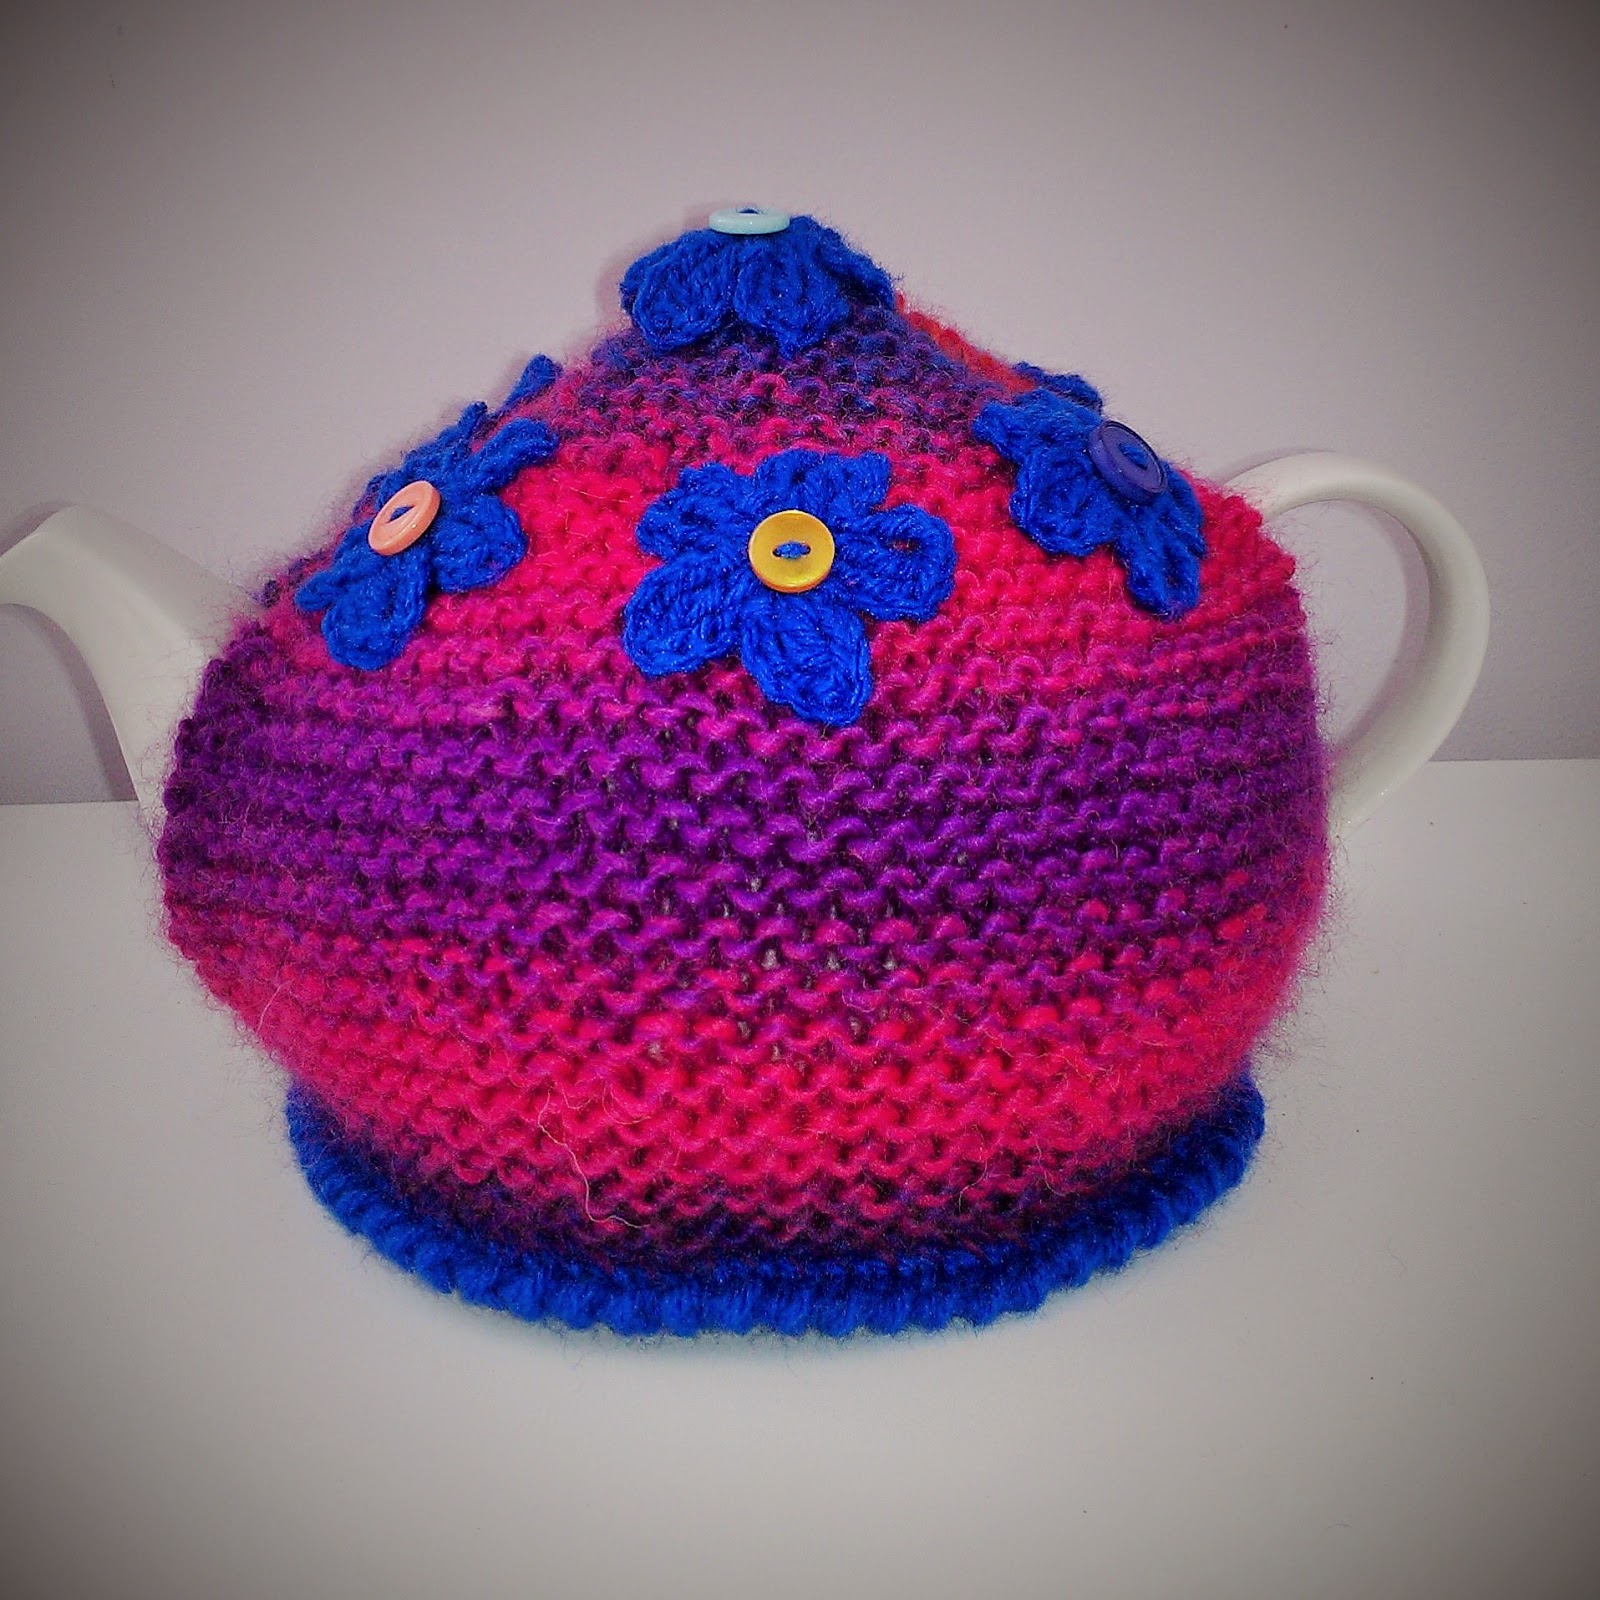 Basic Knitting Pattern For Tea Cosy : Craft a cure for cancer free tea cosy patterns: Basic ...